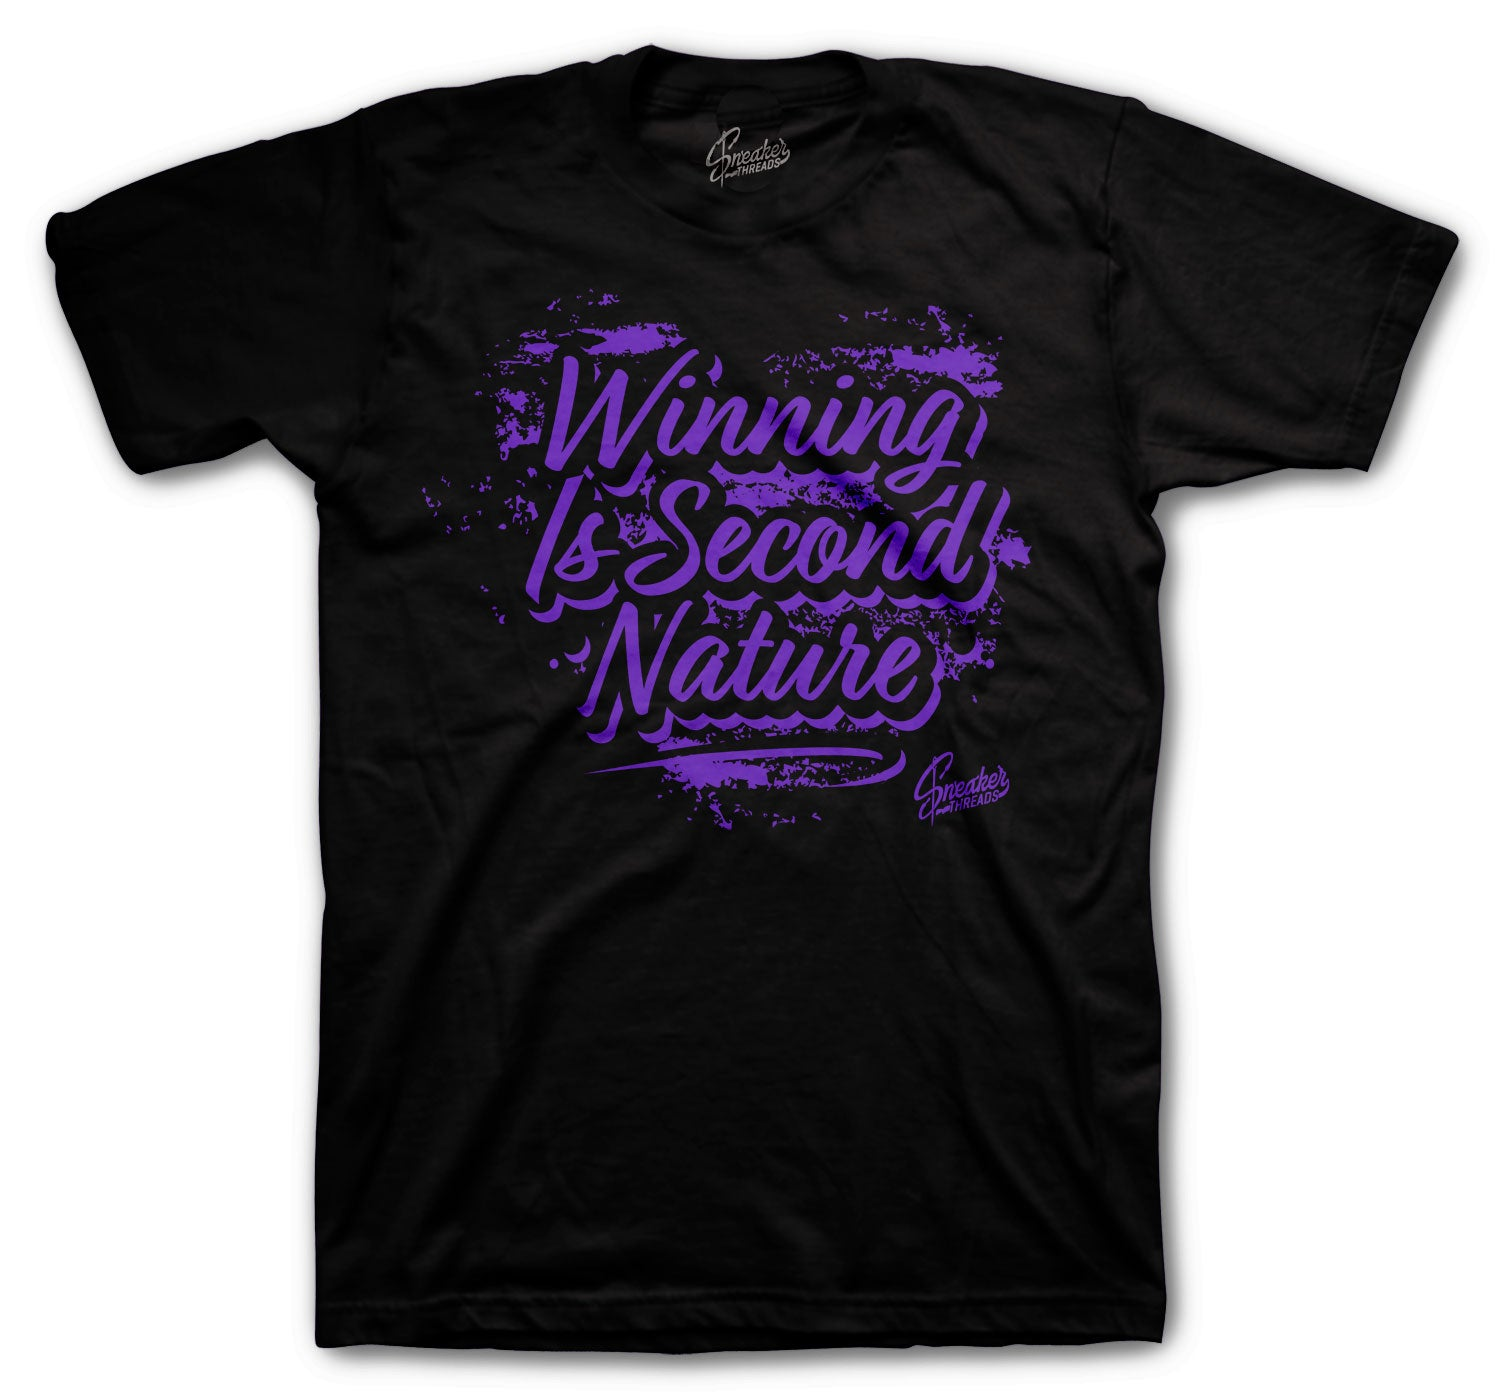 Jordan 12 Dark Concord Second Nature Shirt